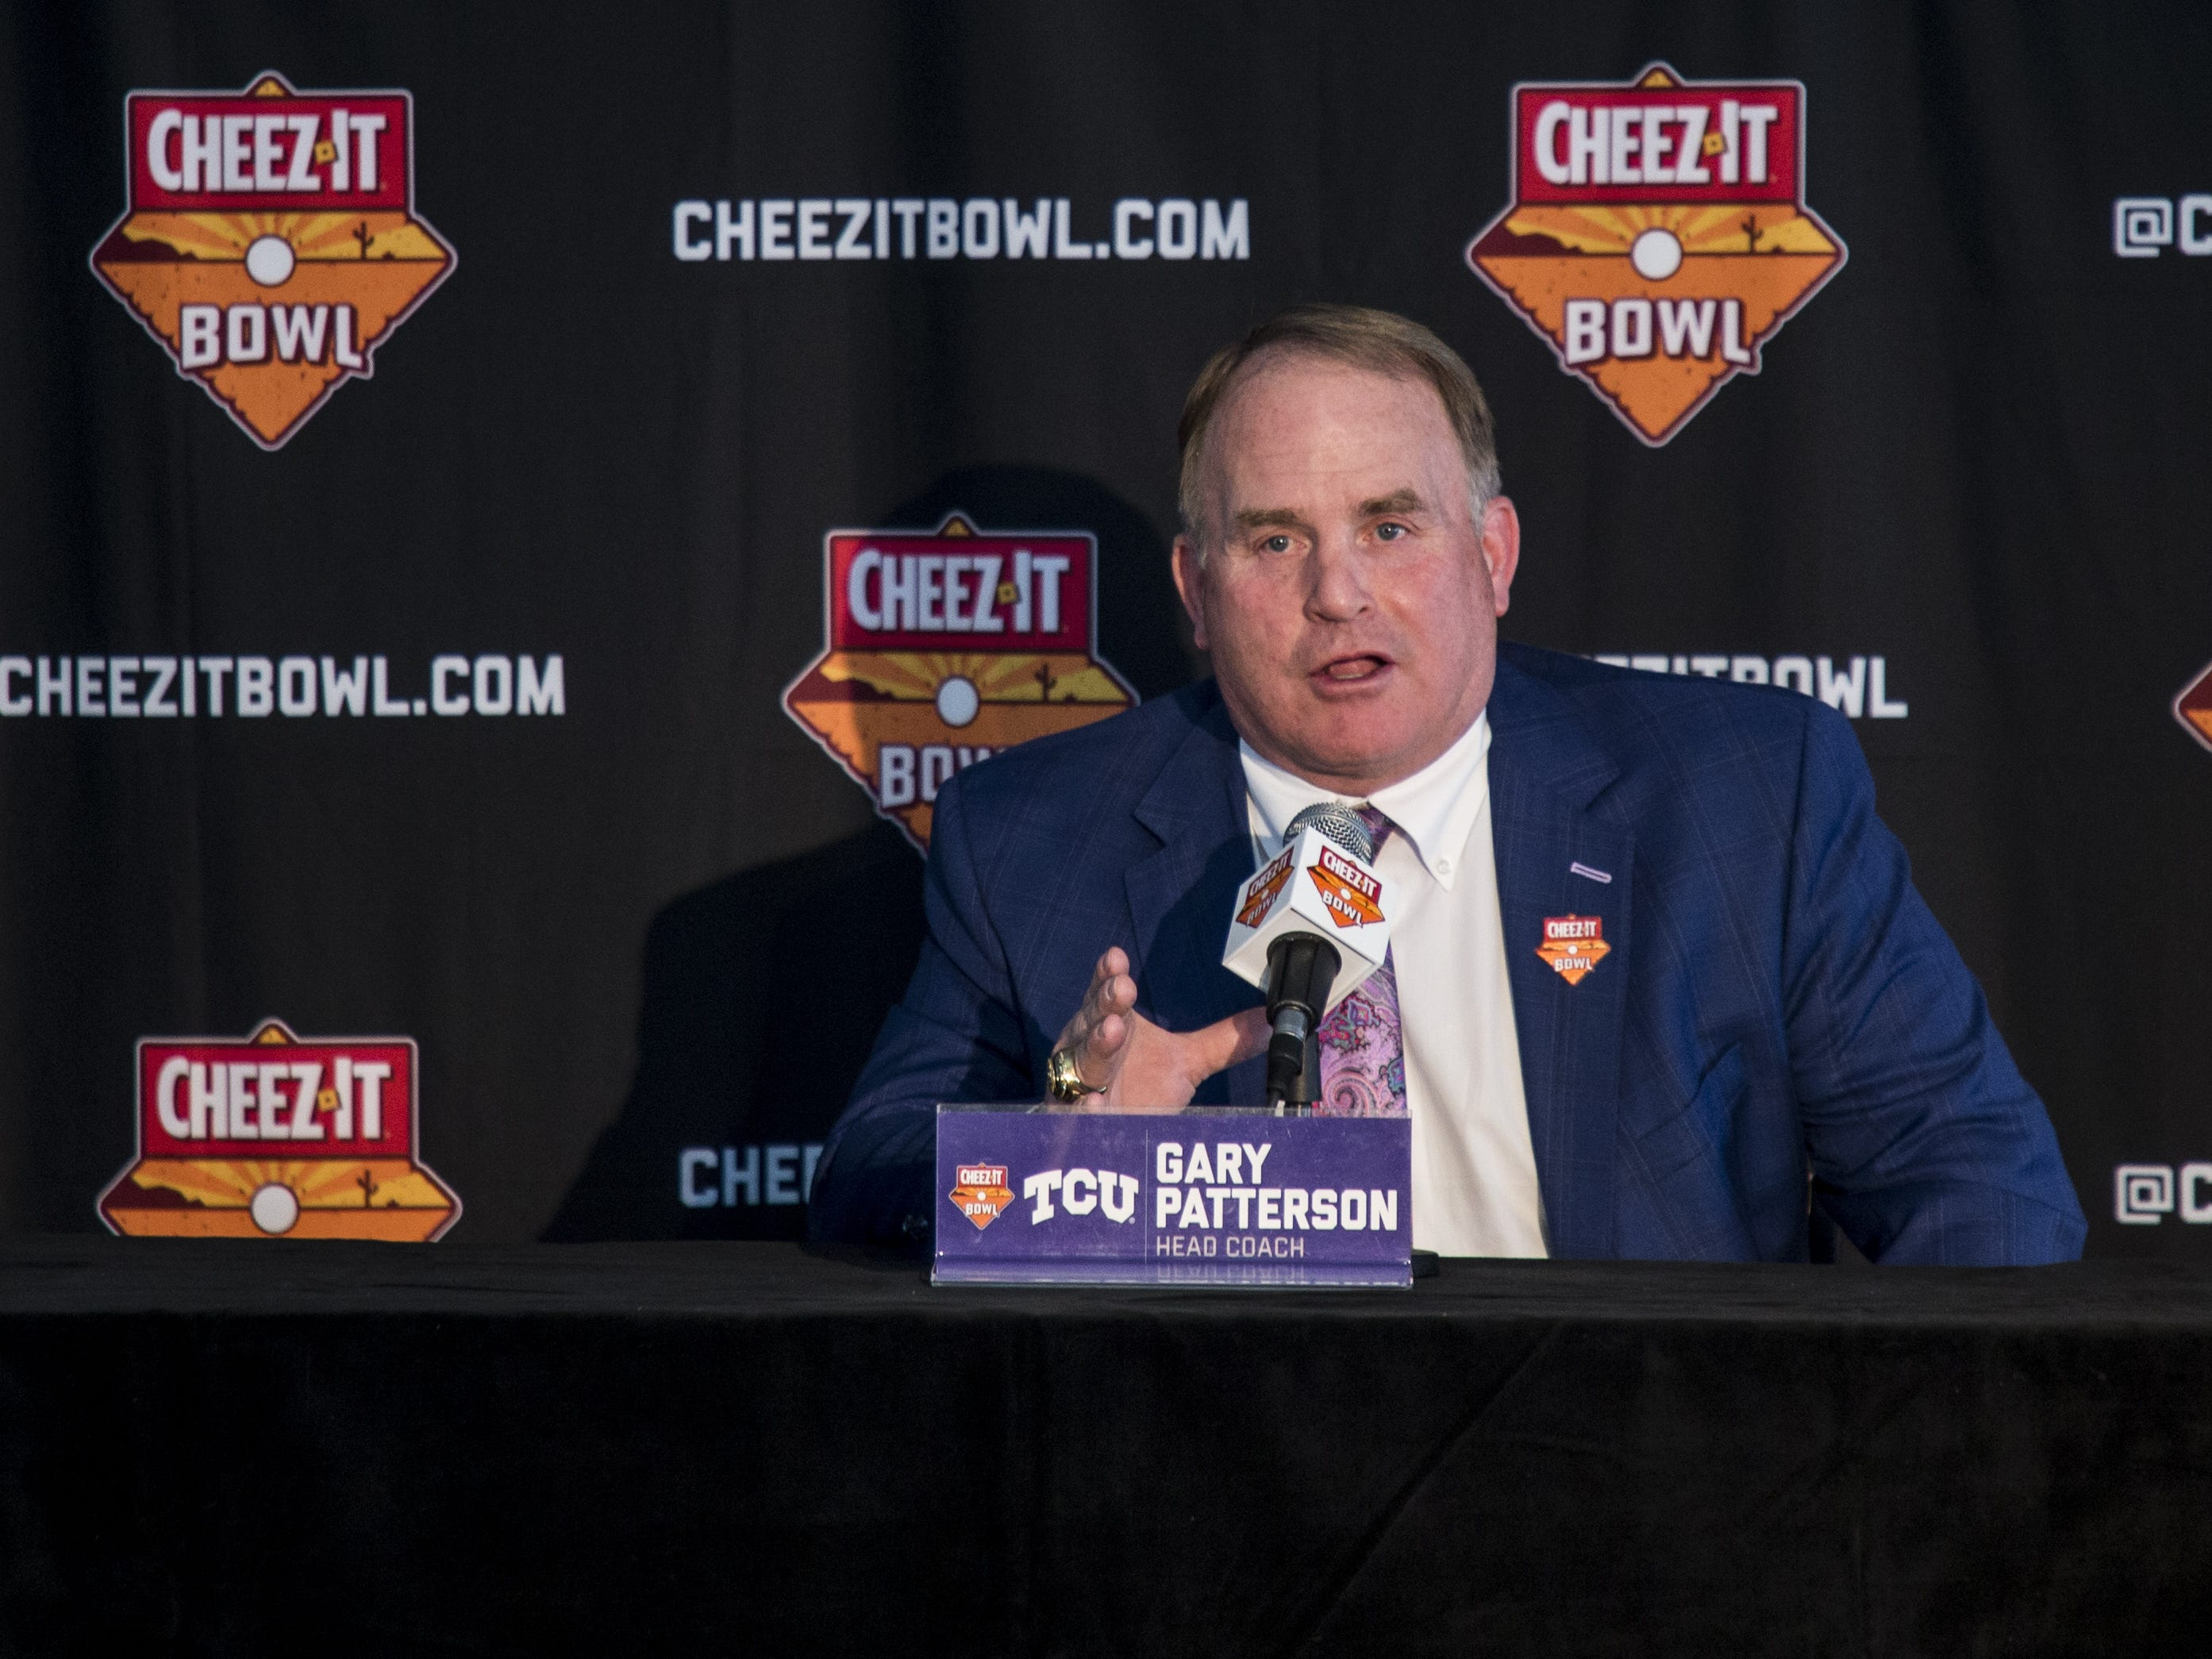 TCU head coach Greg Patterson speaks during a press conference after arriving at Sky Harbor International Airport for the Cheez-It Bowl on Saturday, Dec. 22, 2018, in Phoenix.